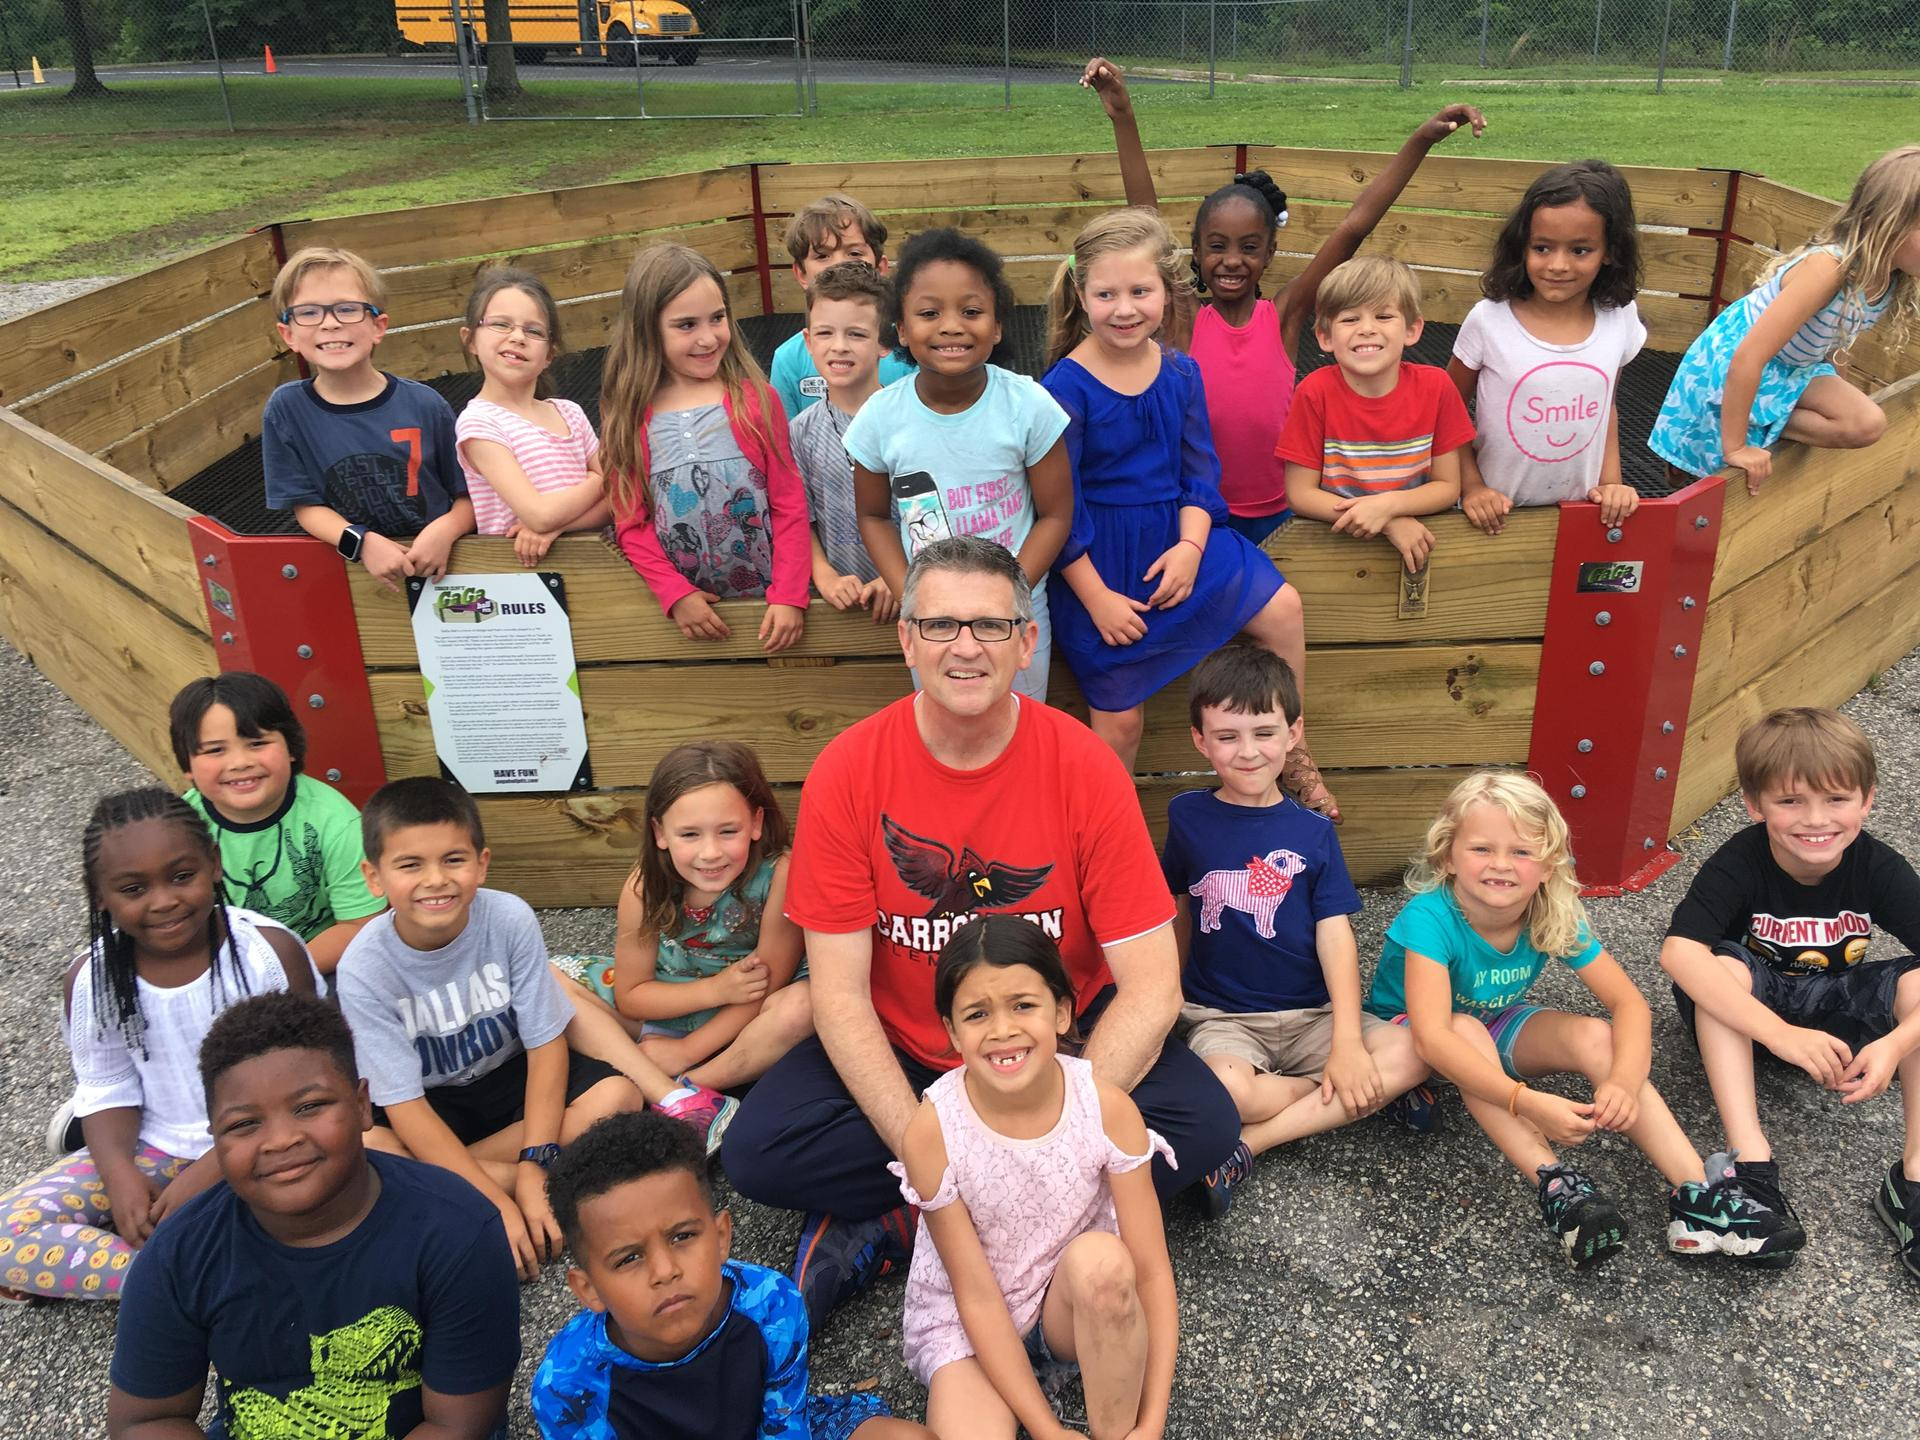 mr. brennan with students in front of gaga pit